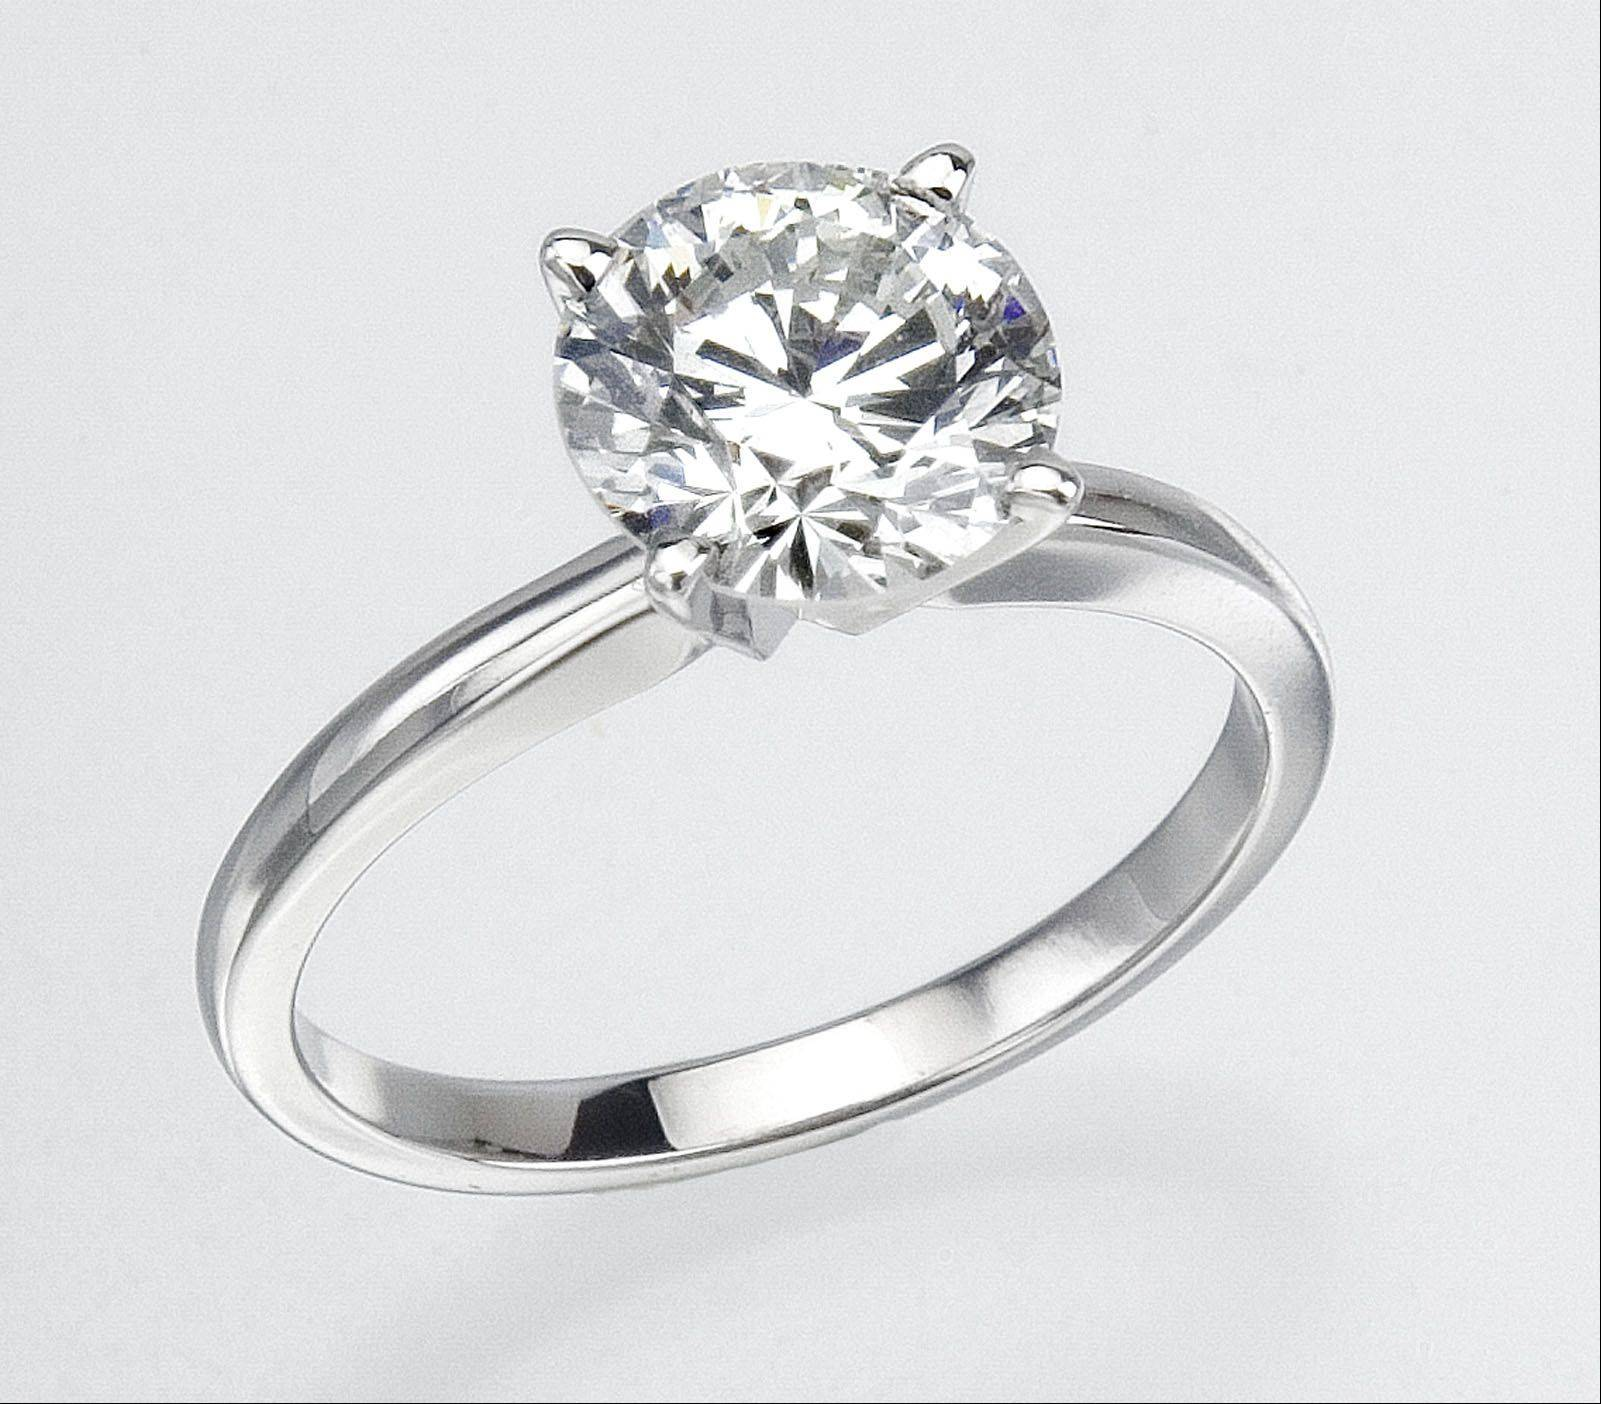 How to buy wedding and engagement rings online